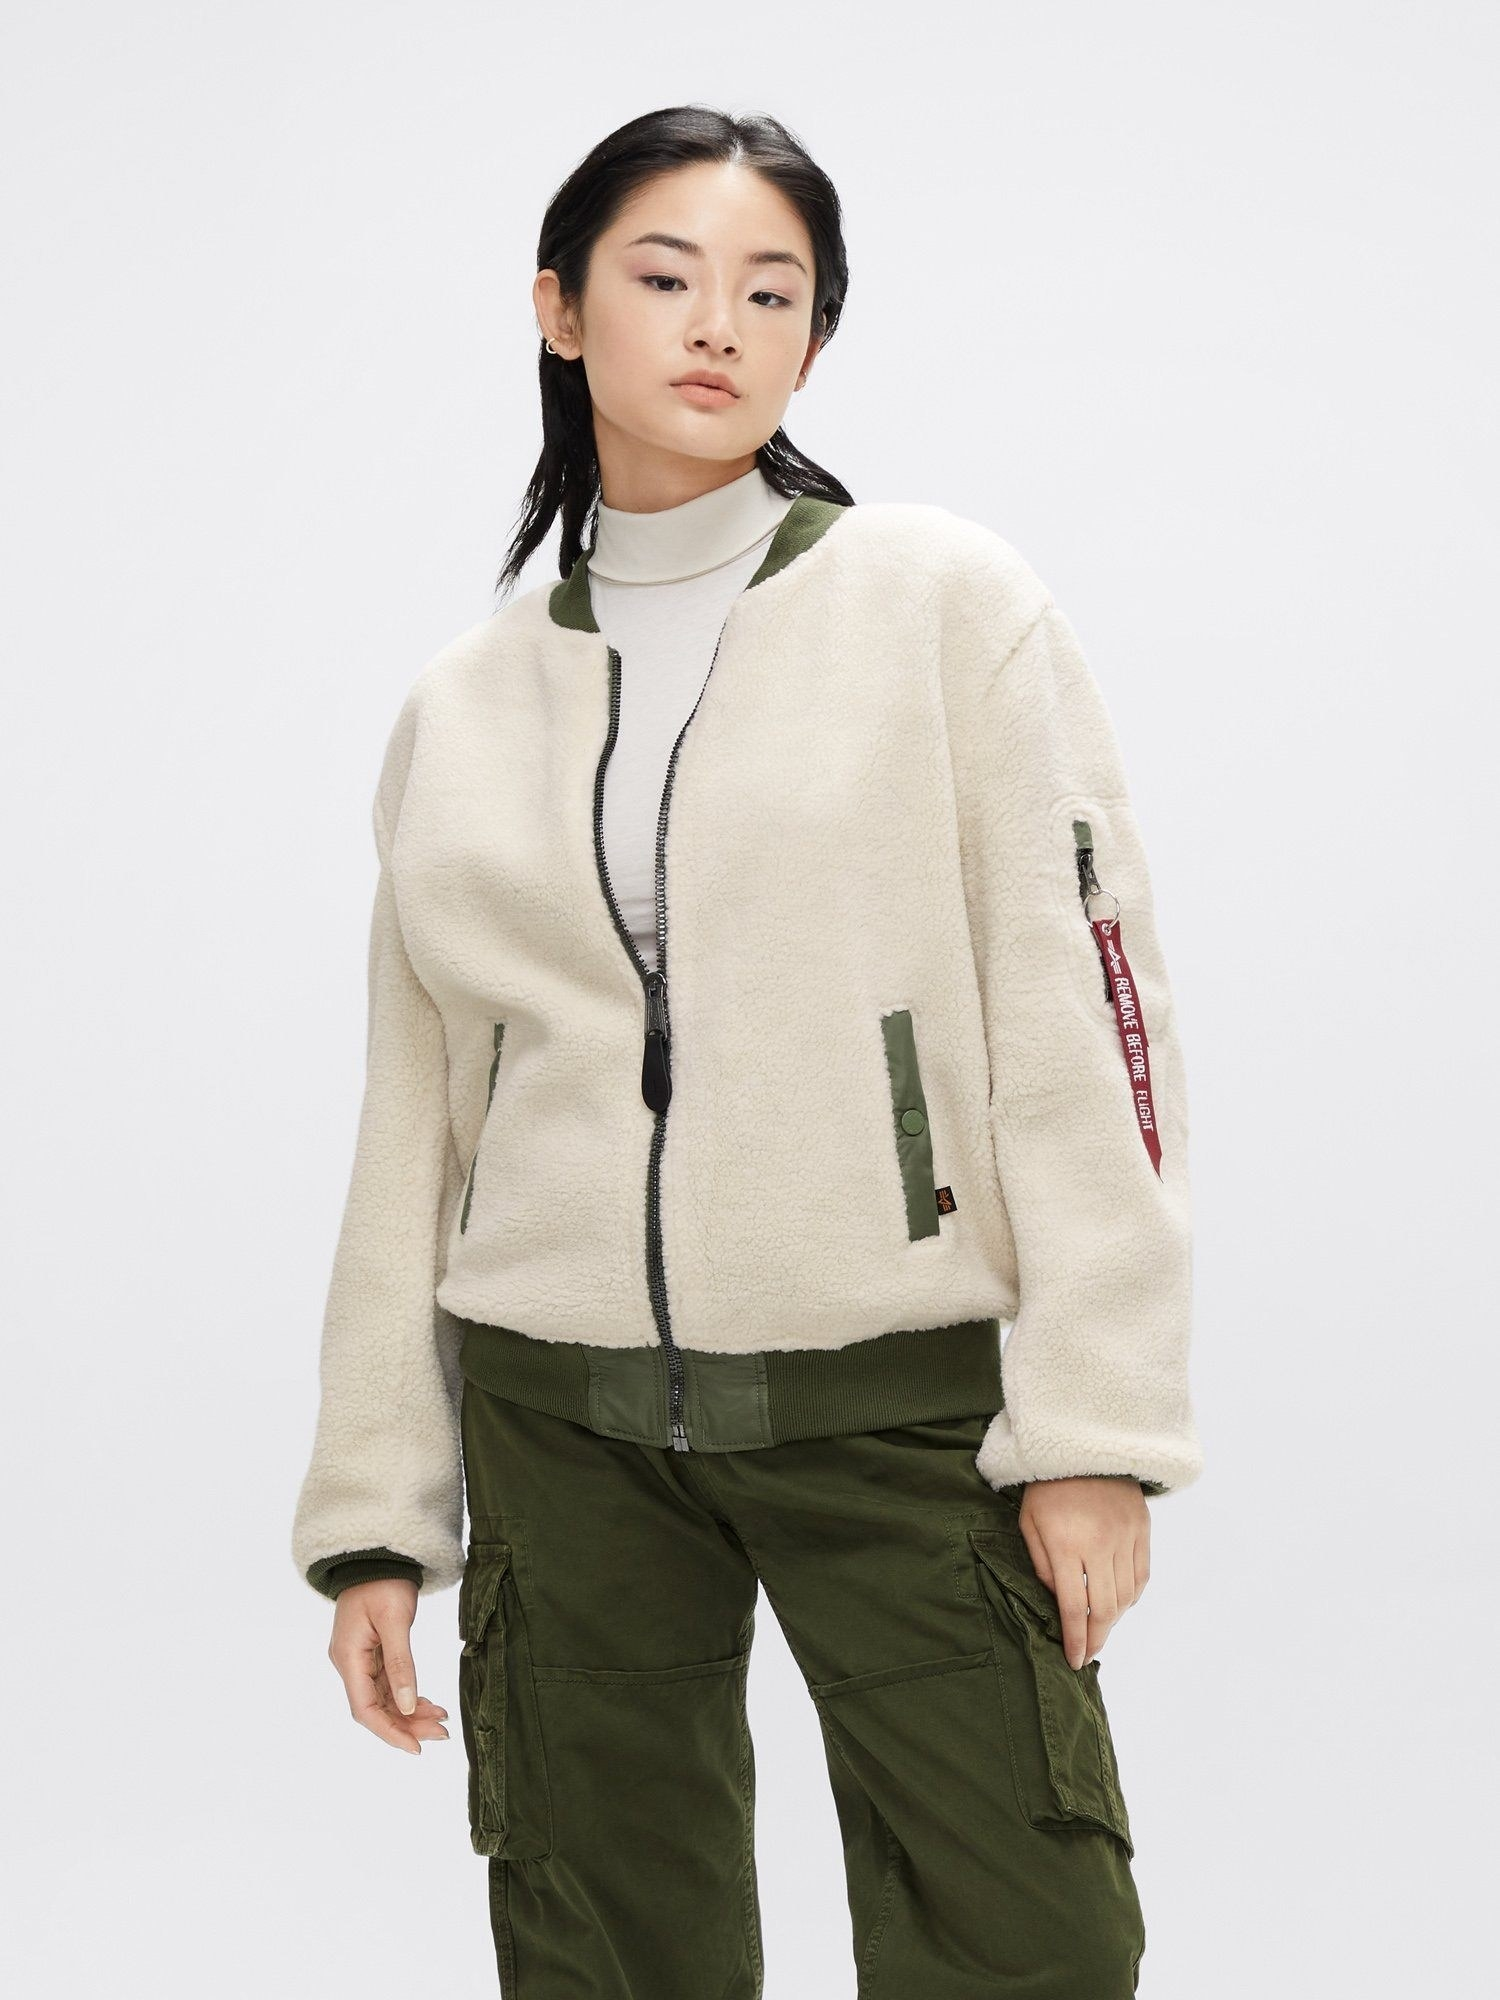 A model wearing the sherpa bomber in light cream